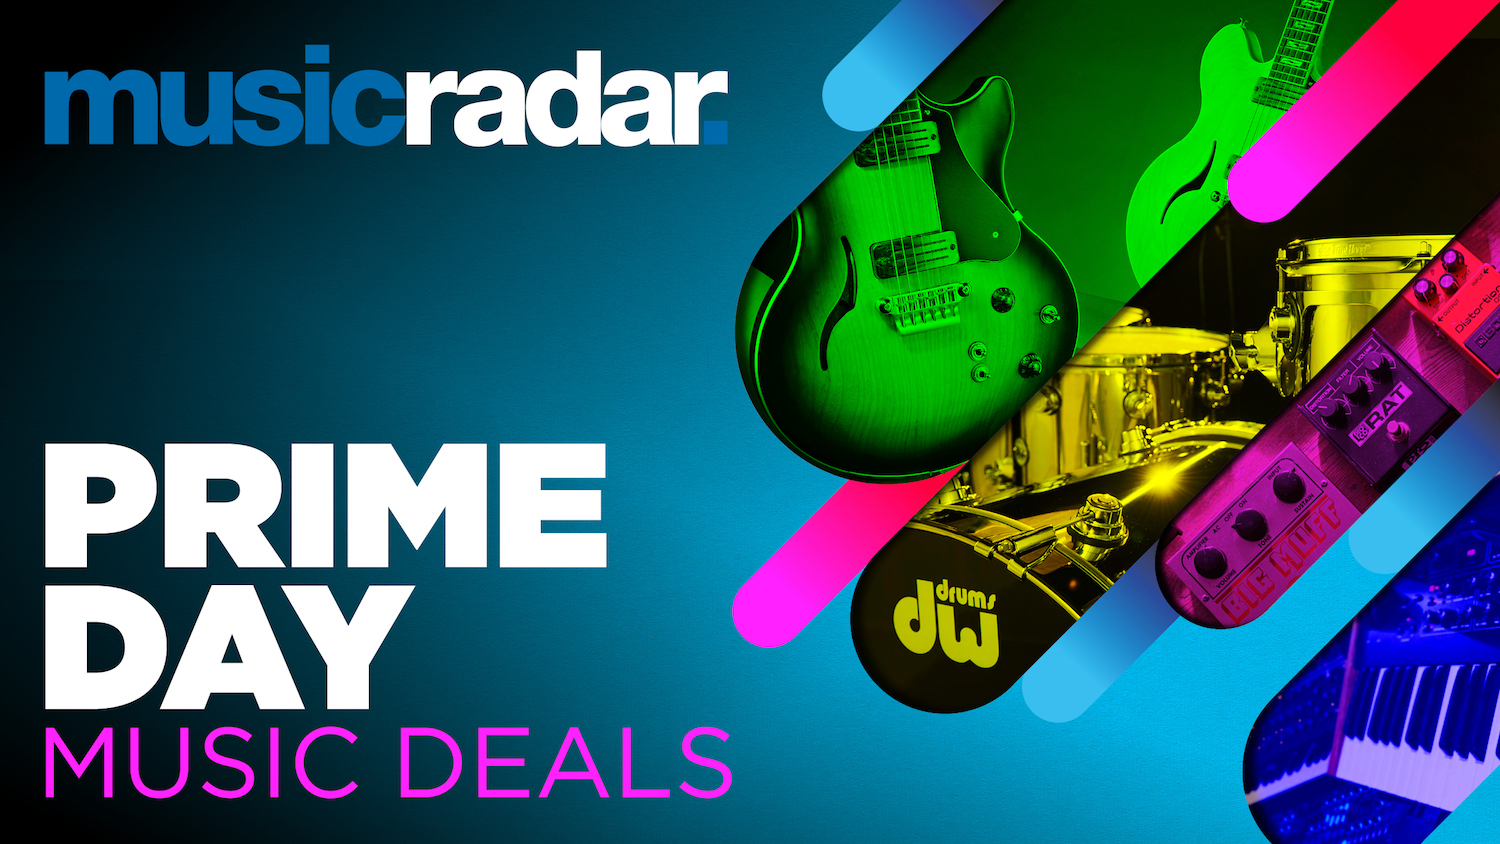 Prime Day music deals 2021: all the best deals for musicians on day one of Prime Day